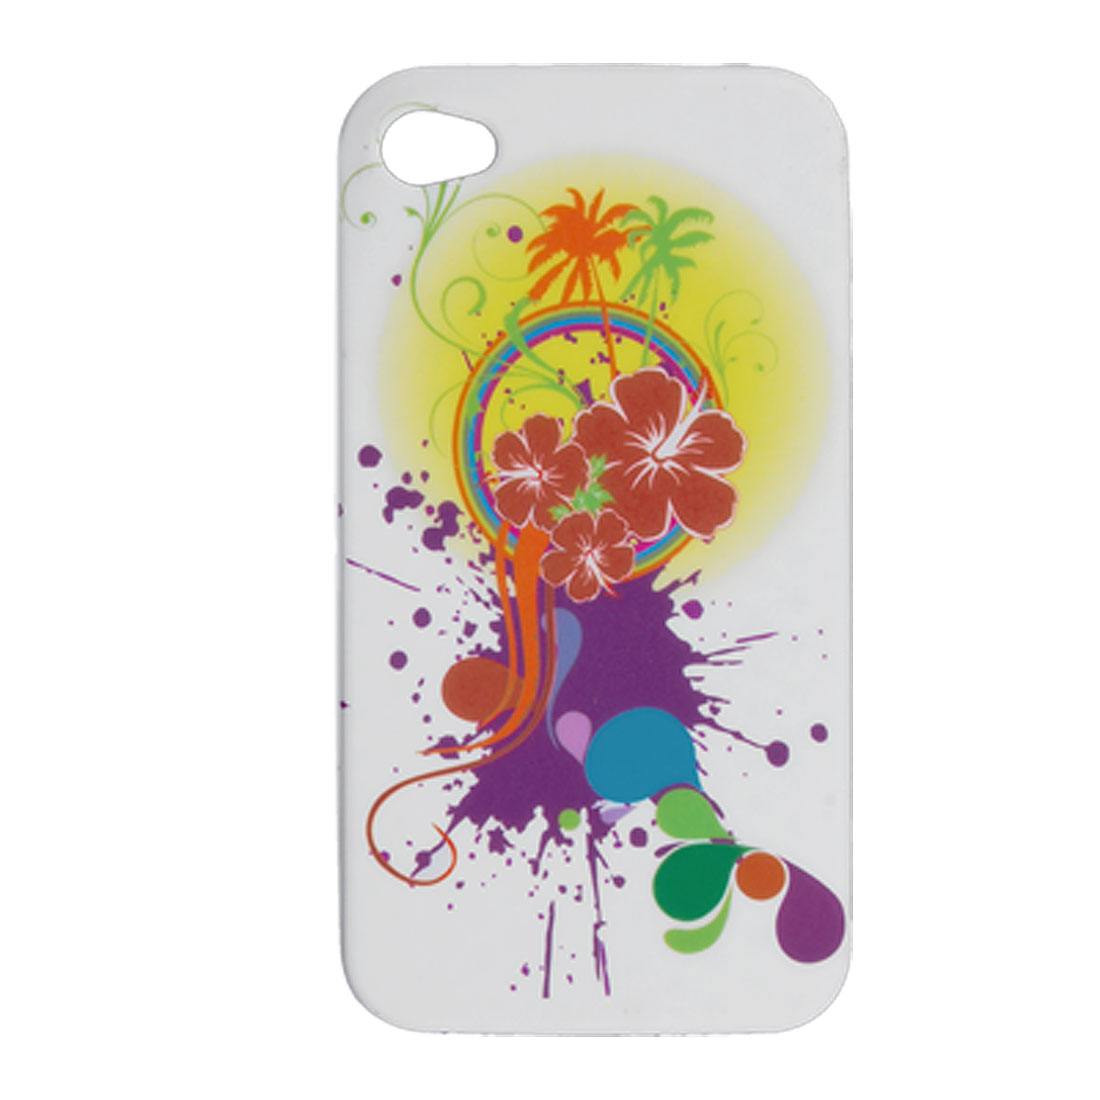 Rainbow Flower Print Soft Plastic Case + Screen Guard for iPhone 4 4G